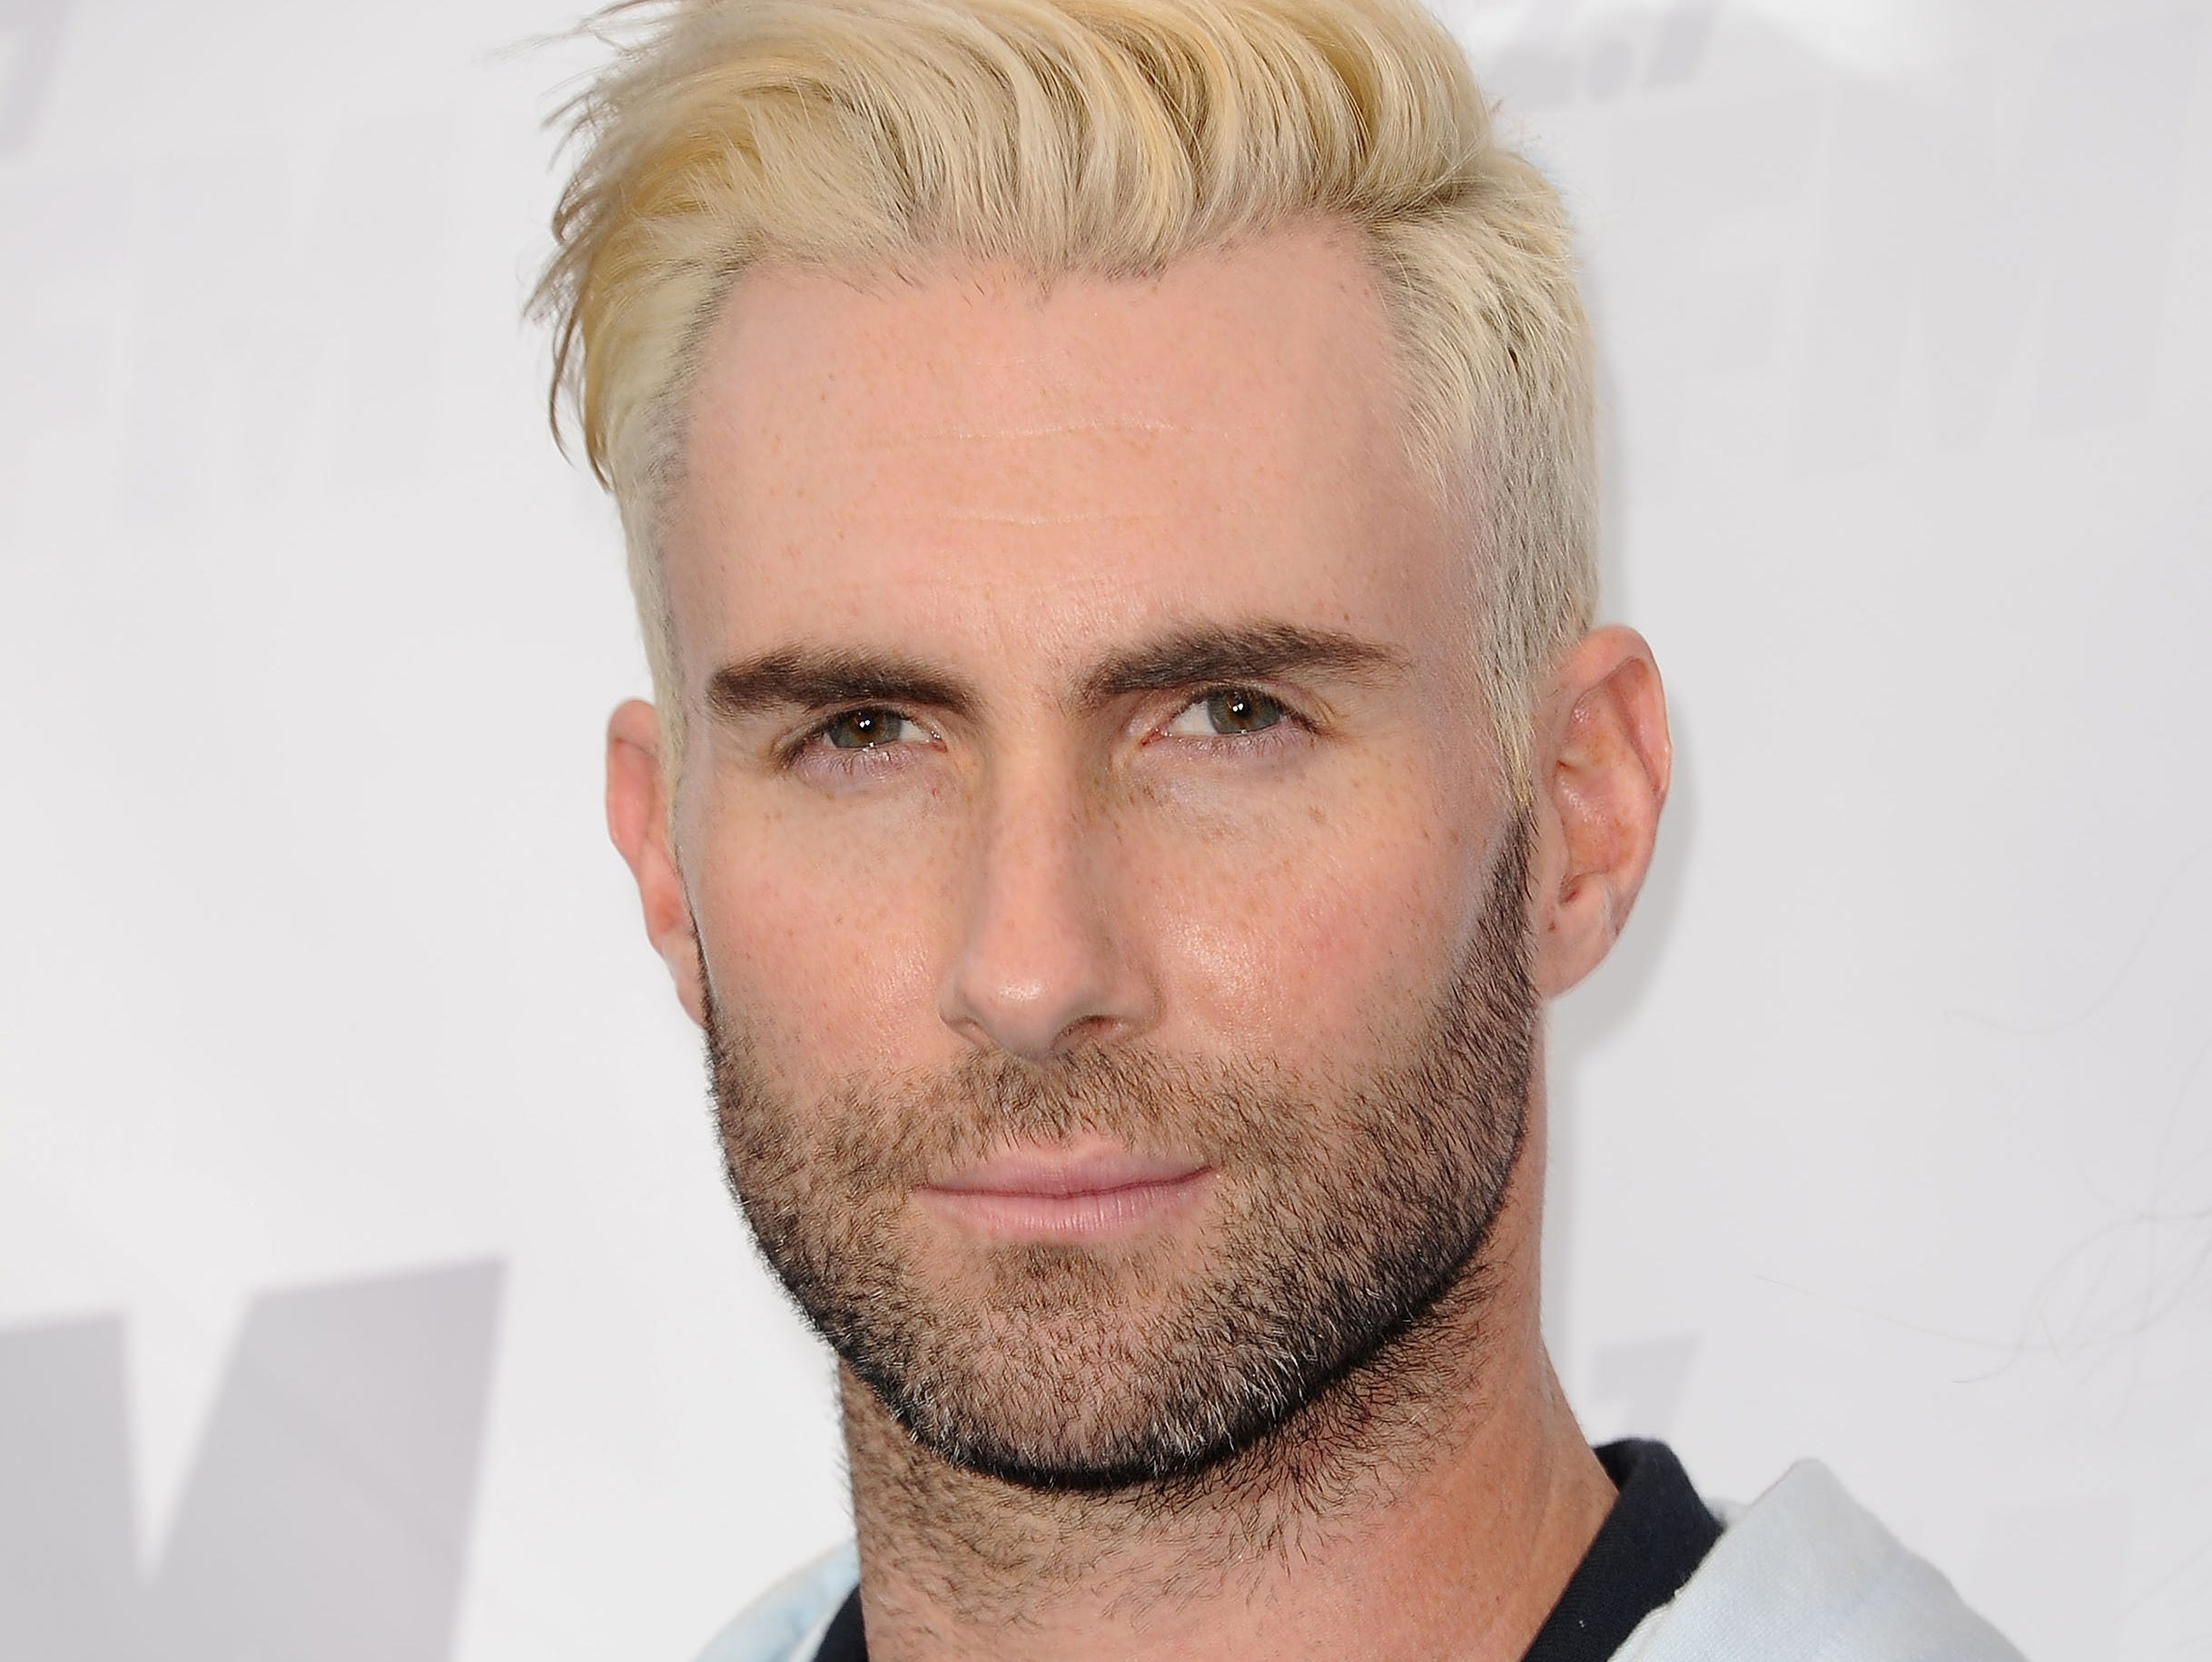 LOS ANGELES, CA - MAY 10:  Adam Levine of Maroon 5 attends 102.7 KIIS FM's 2014 Wango Tango at StubHub Center on May 10, 2014 in Los Angeles, California.  (Photo by Jason LaVeris/FilmMagic) ORG XMIT: 489380659 ORIG FILE ID: 489445683